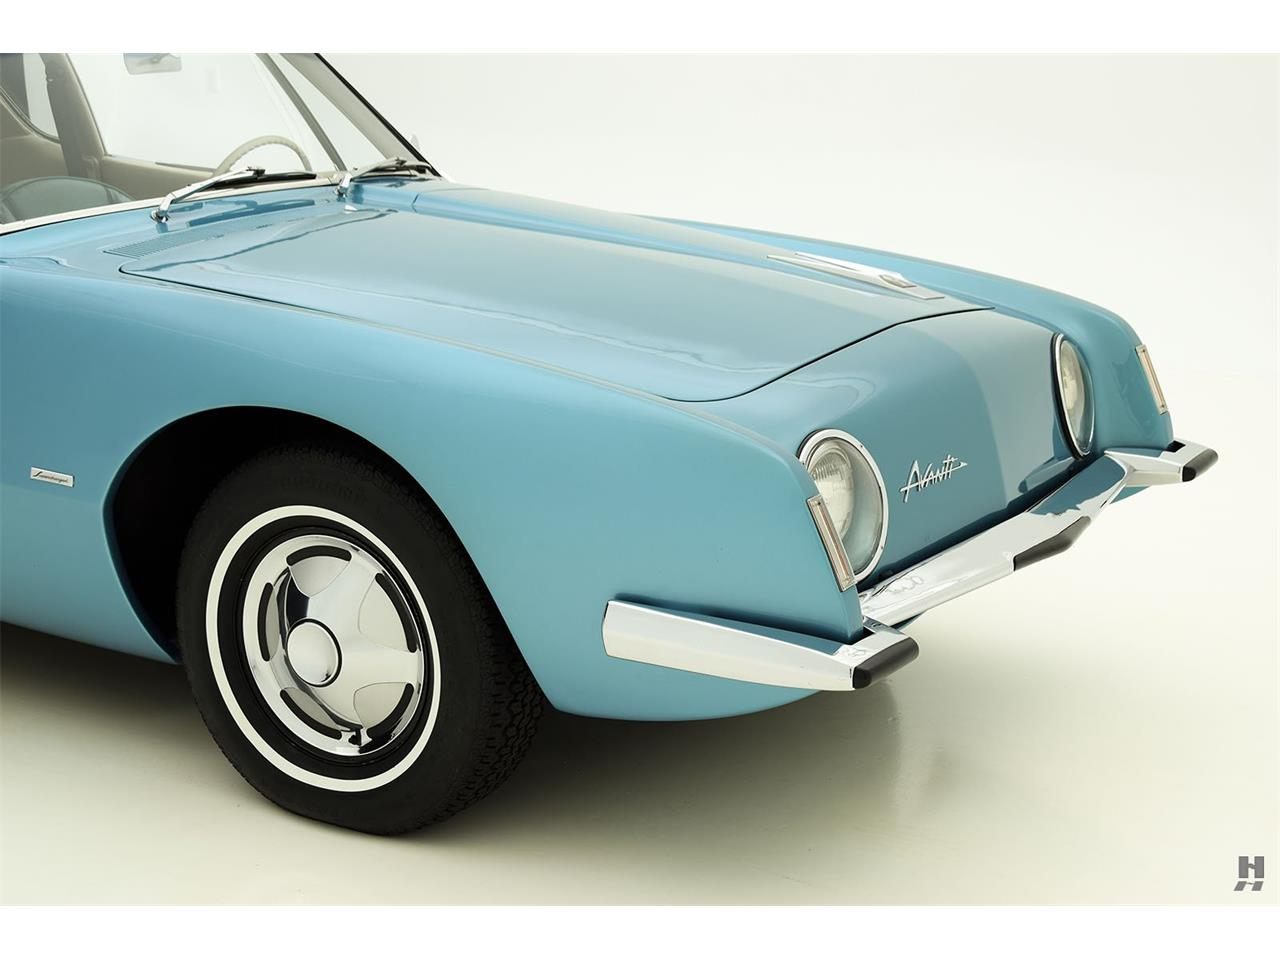 Large Picture of Classic 1963 Studebaker Avanti - $77,500.00 Offered by Hyman Ltd. Classic Cars - MGHN